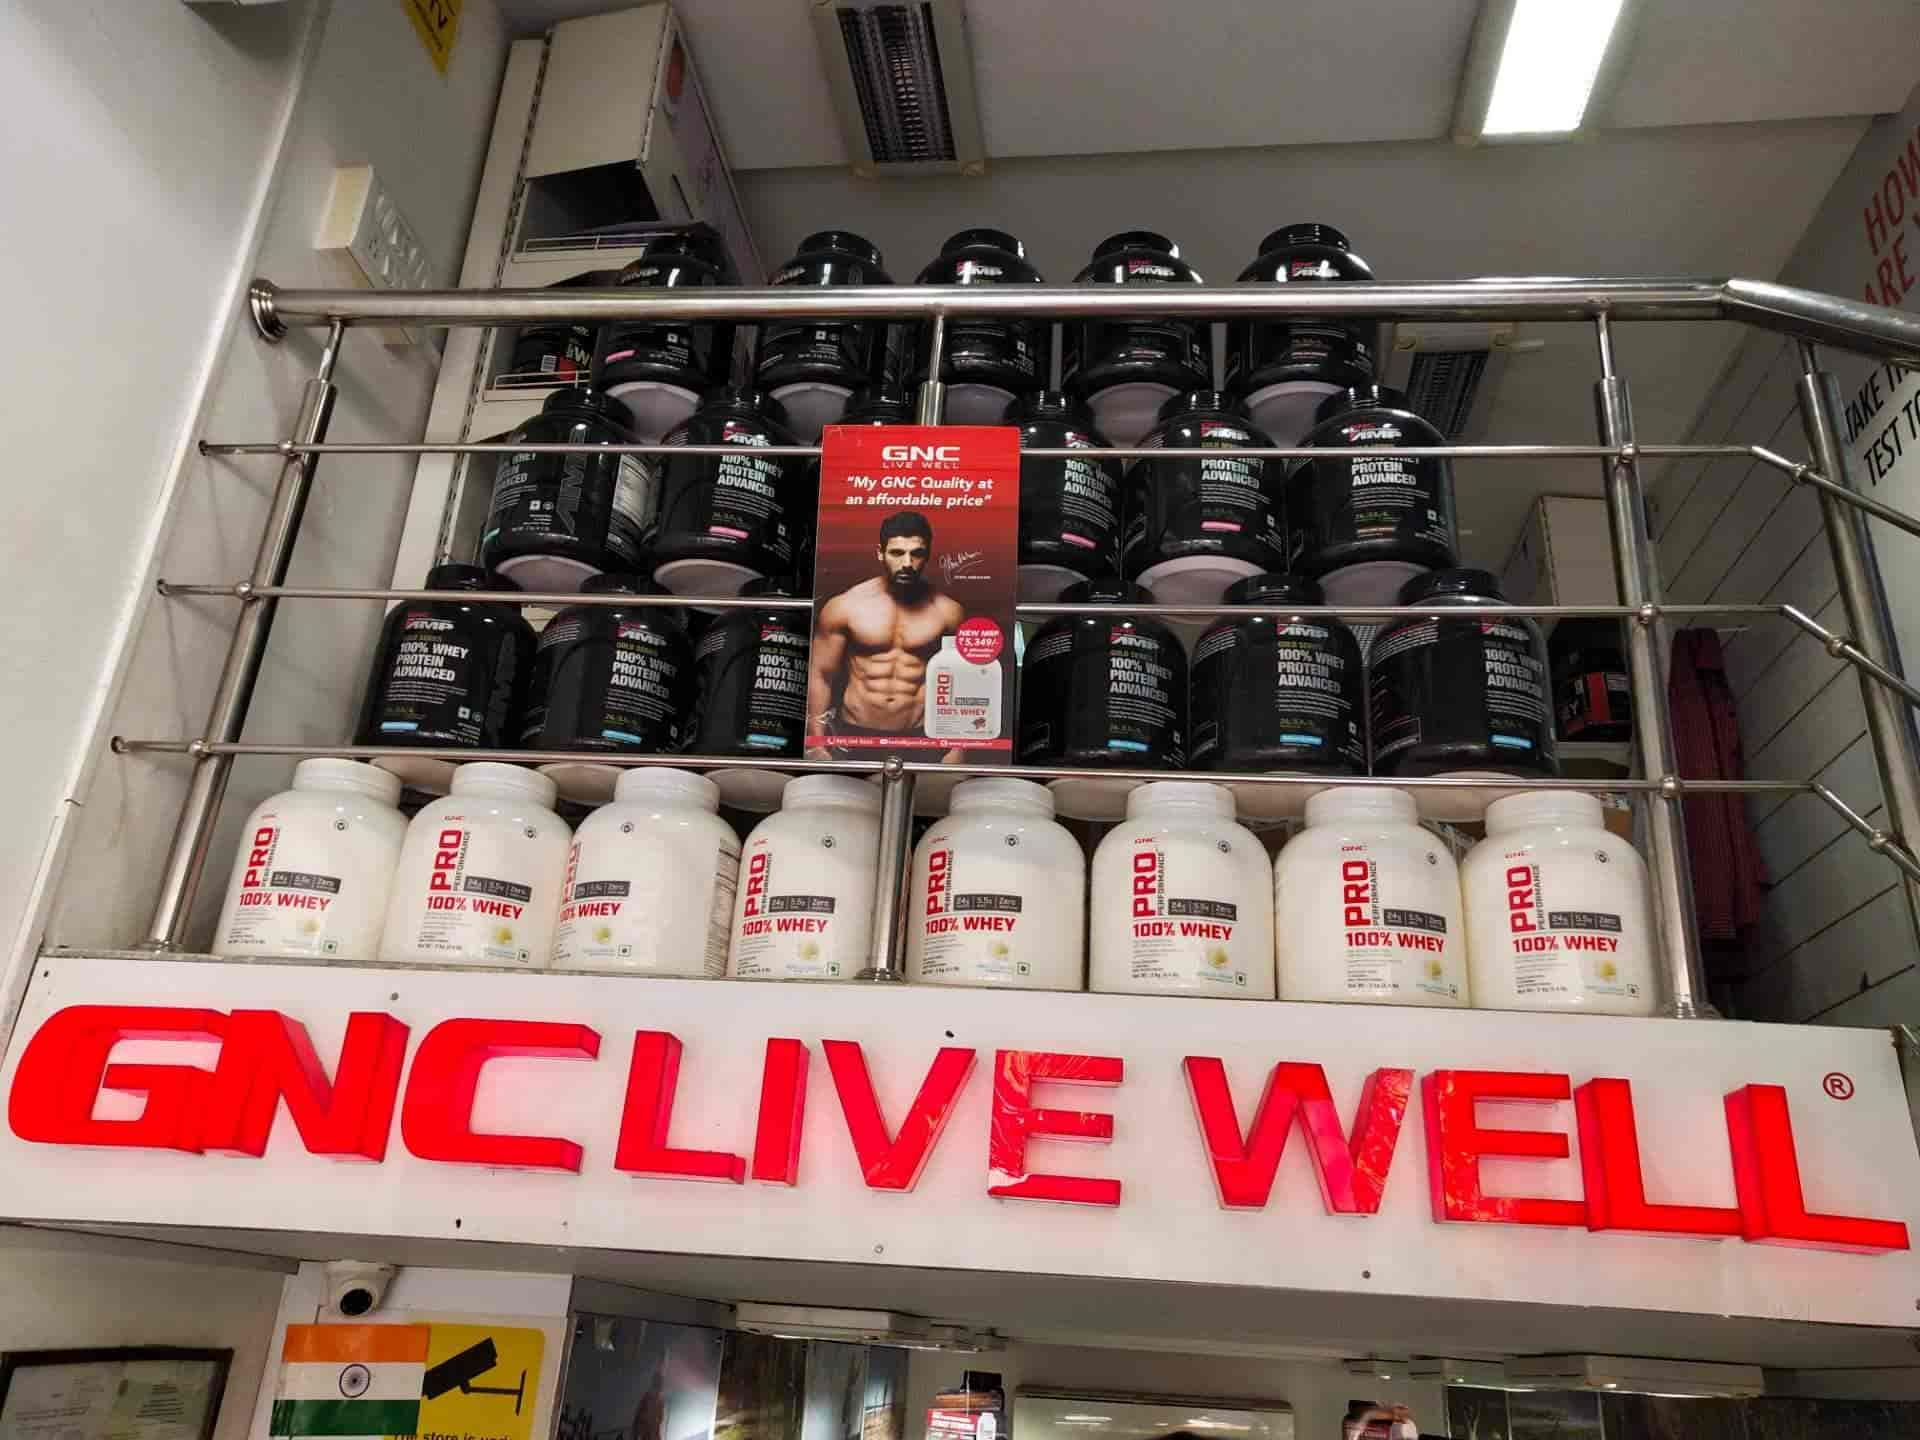 Gnc Live Well, Chandigarh Sector 35c - Food Supplement ... Gnc Maps on puma map, bank of america map, mcdonald's map, target map, apple store map, urban outfitters map, old navy map, at&t map, coldwater creek map,